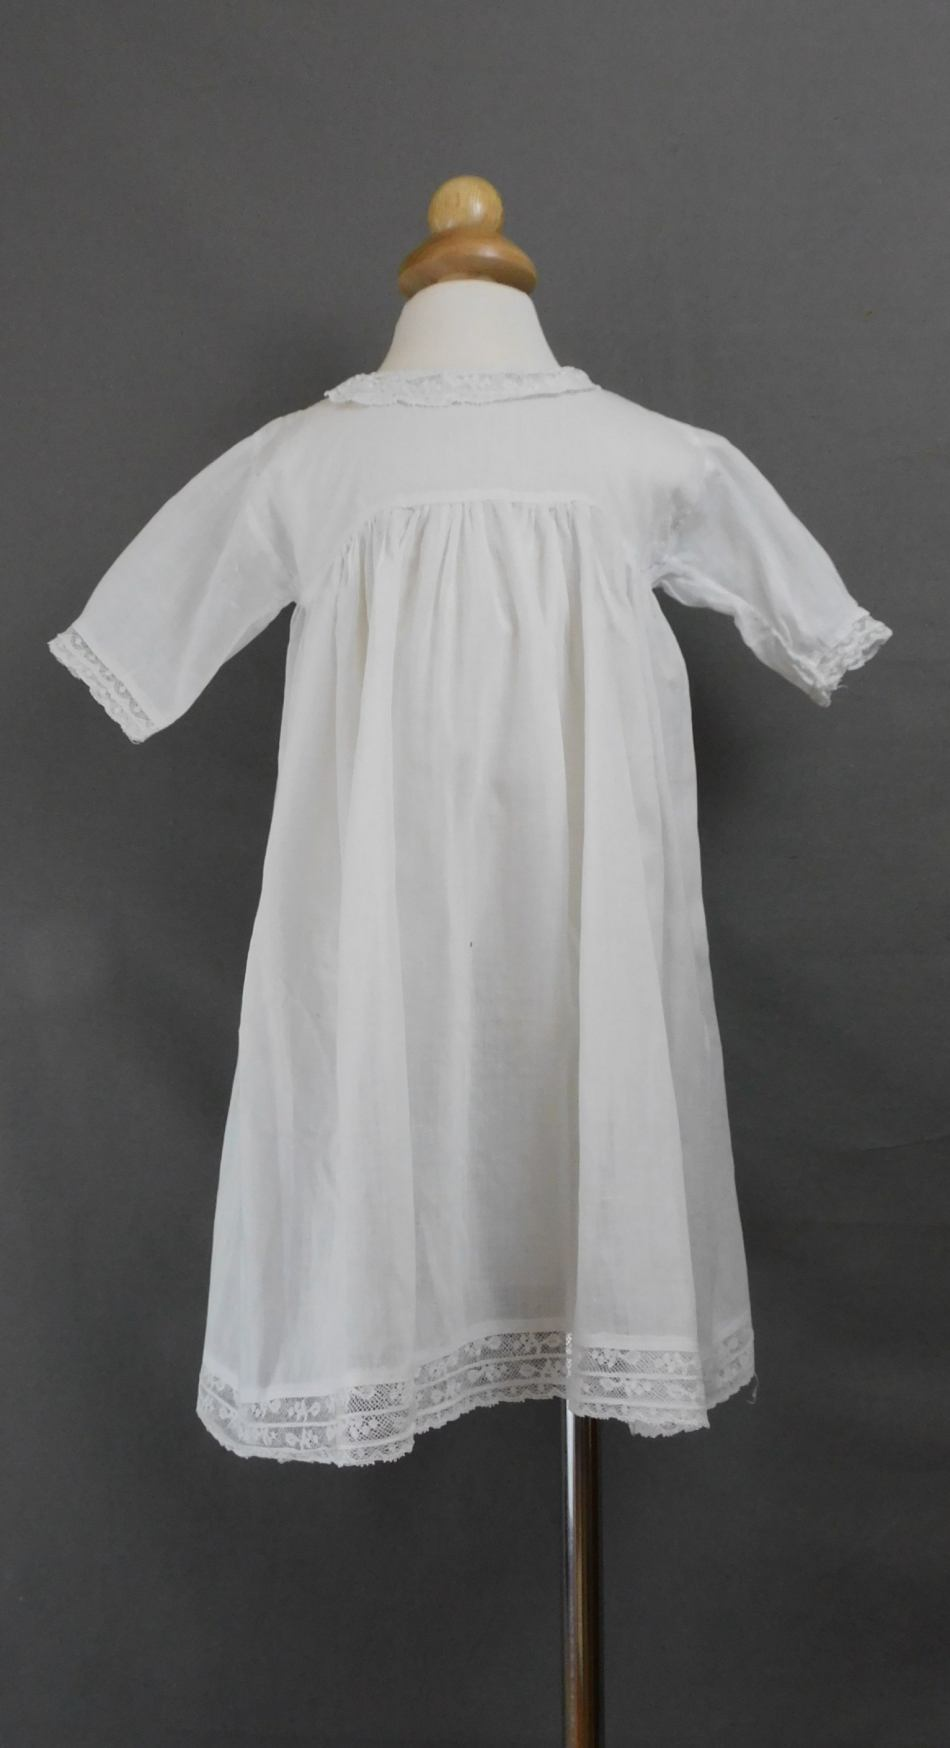 Antique Toddler Baby Dress, Edwardian 1900s Lace Collar, fits 19 inch Chest